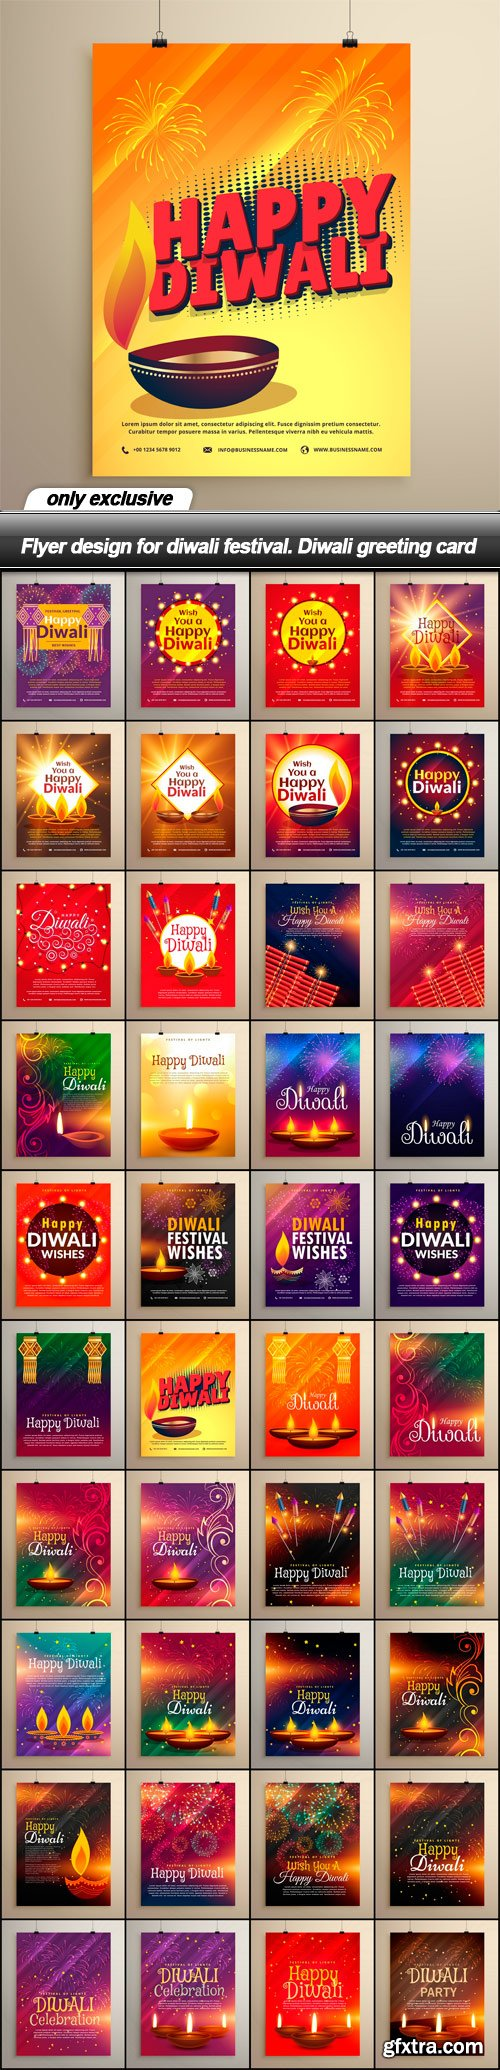 Flyer design for diwali festival. Diwali greeting card - 40 EPS